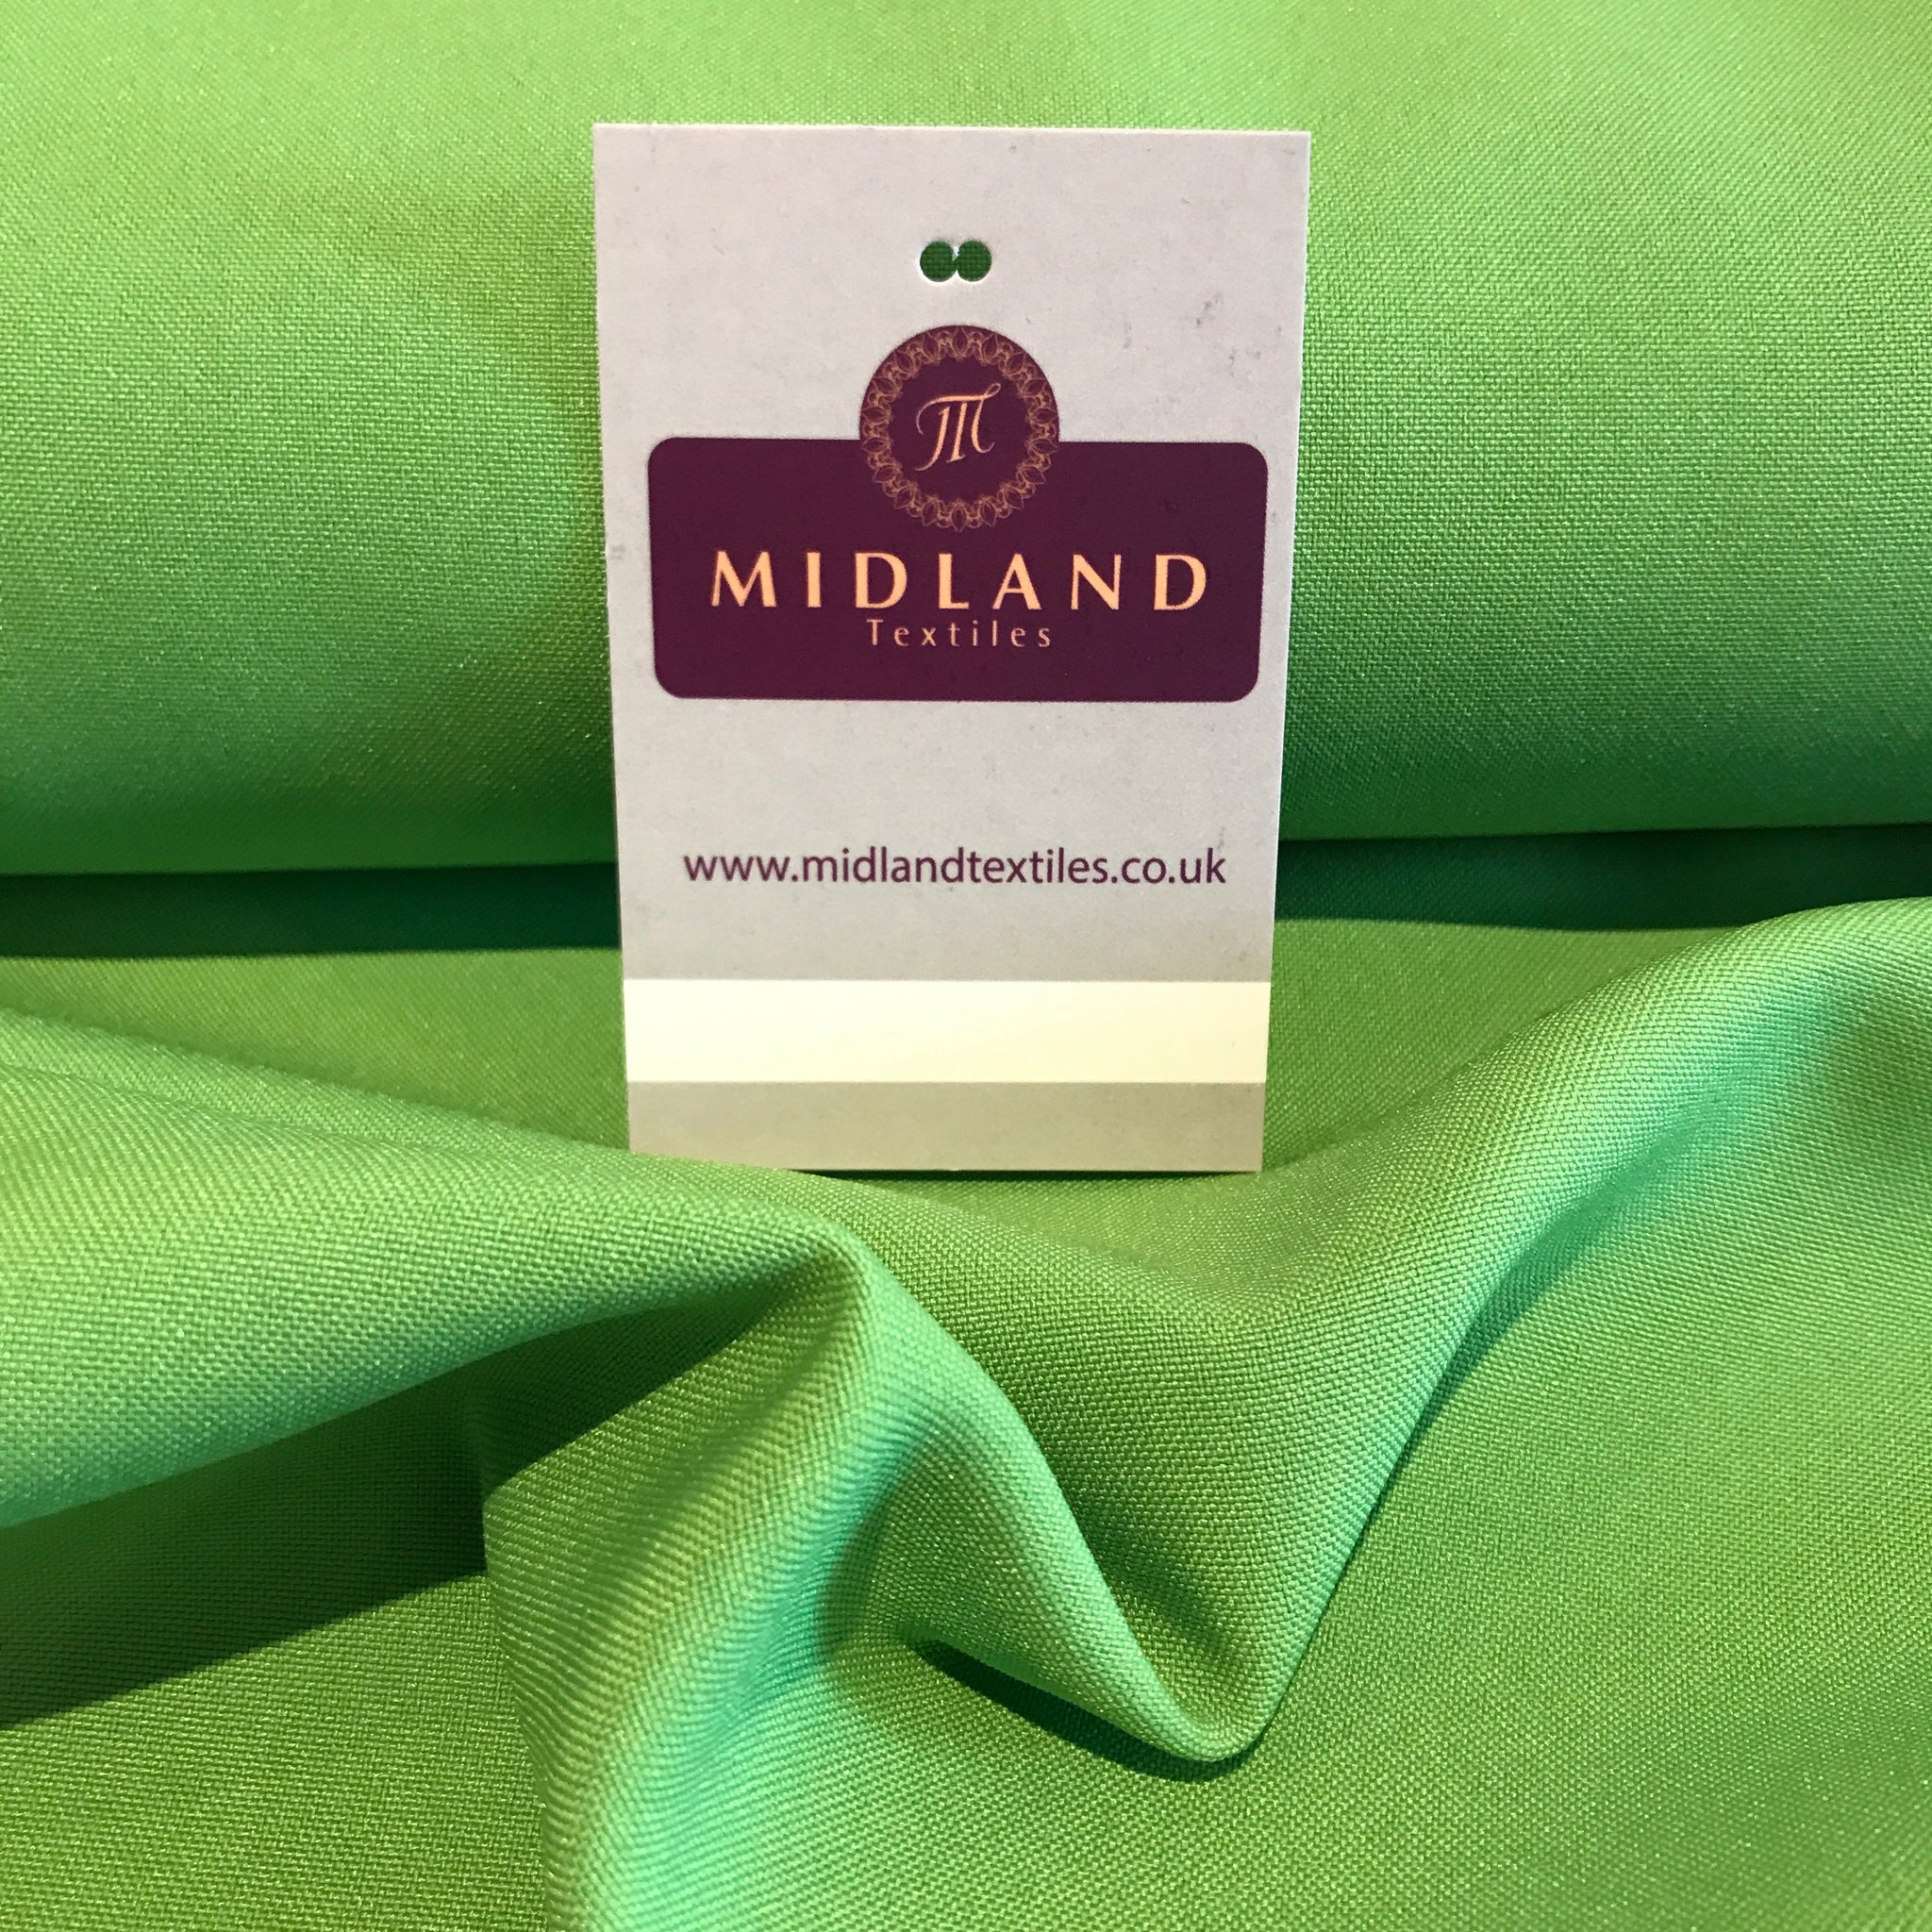 "Bi-Stretch Polyester suiting dress Fabric 44 "" M730 Mtex - Midland Textiles & Fabric"